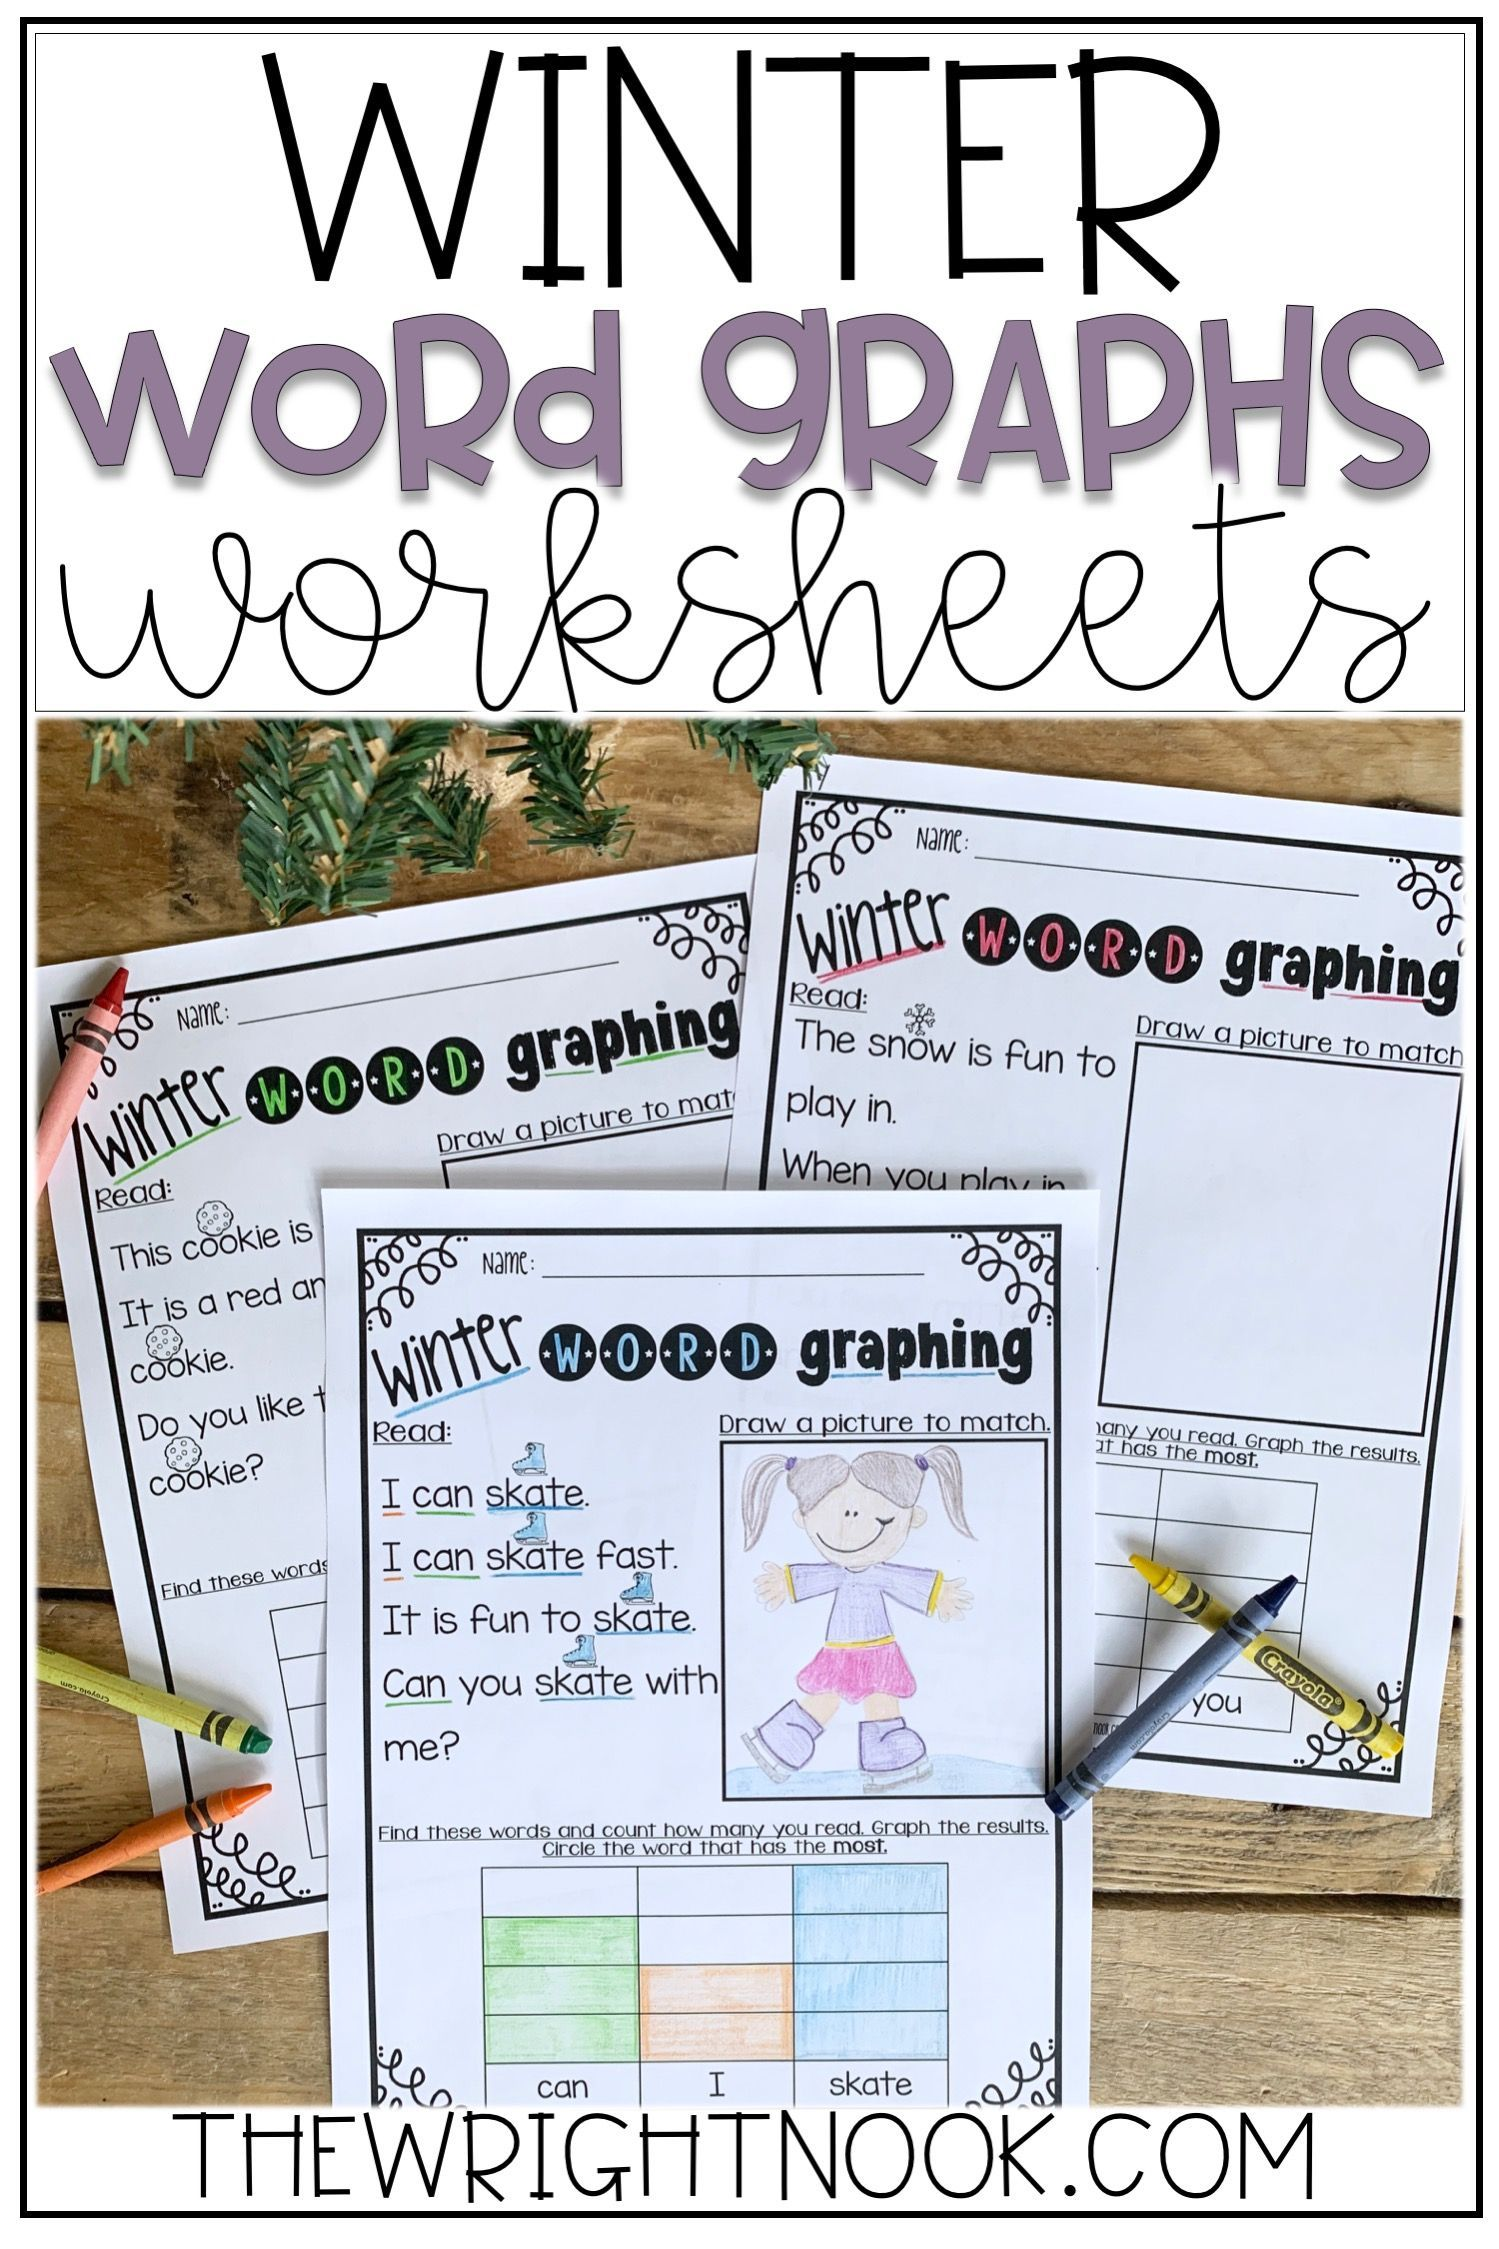 Reading Word Graphs For Winter